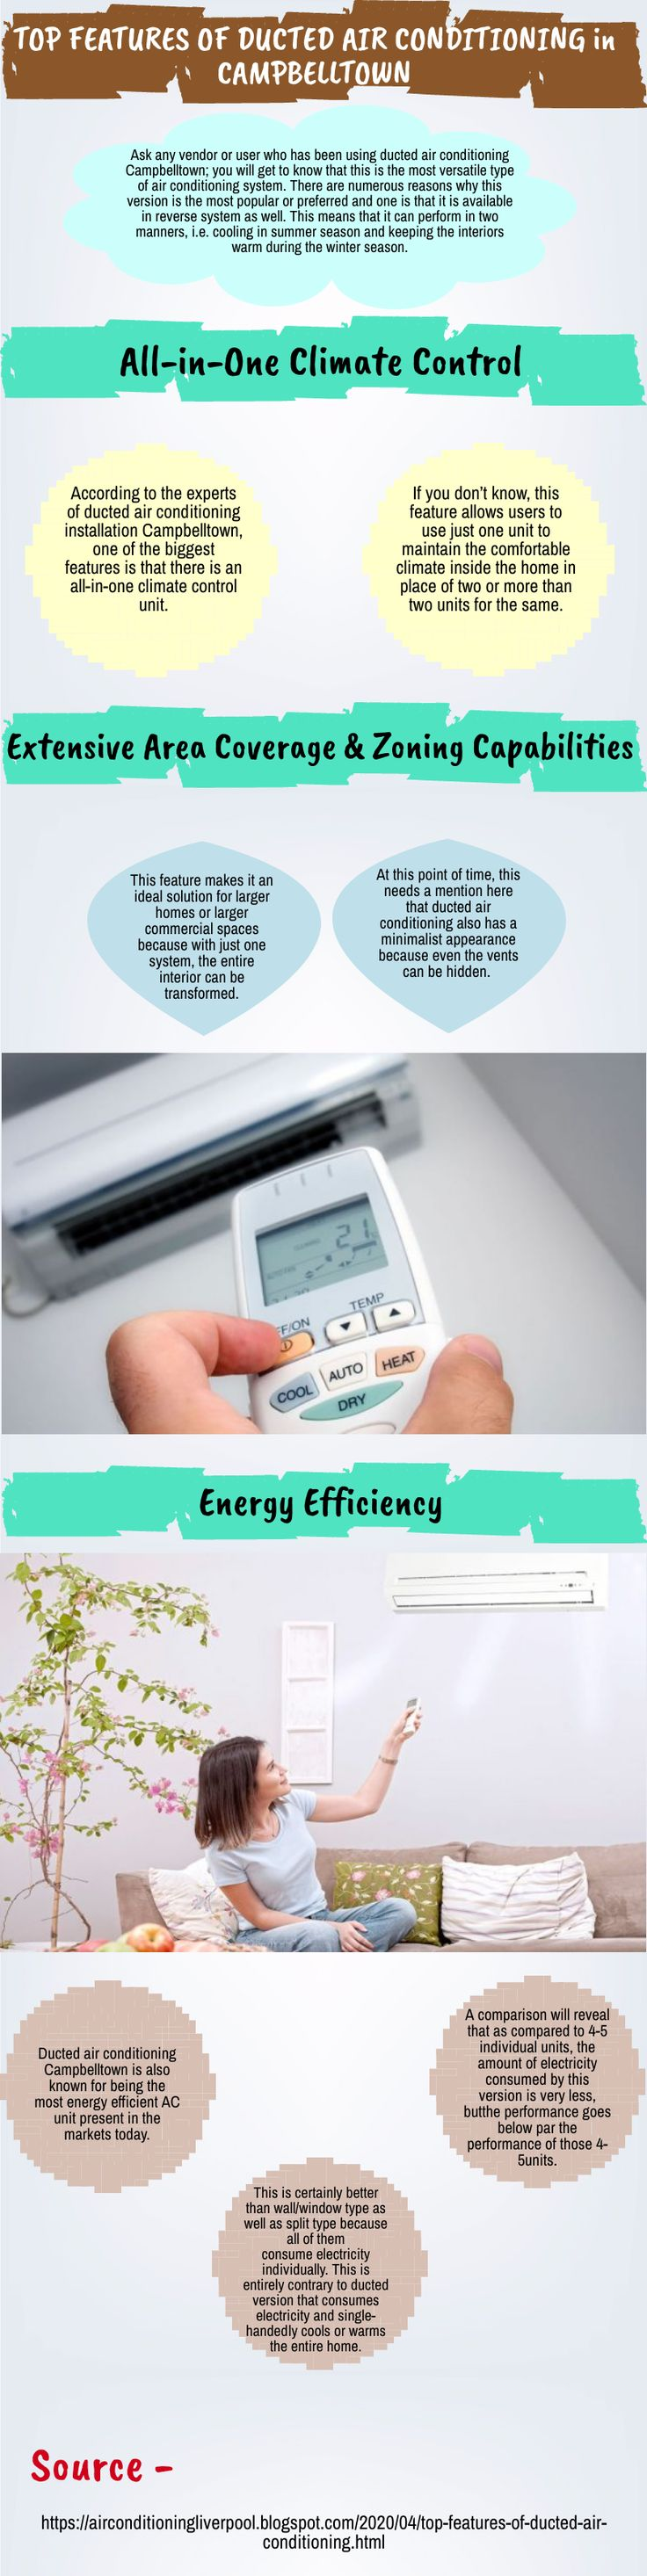 Top Features of Ducted Air Conditioning in Campbelltown in